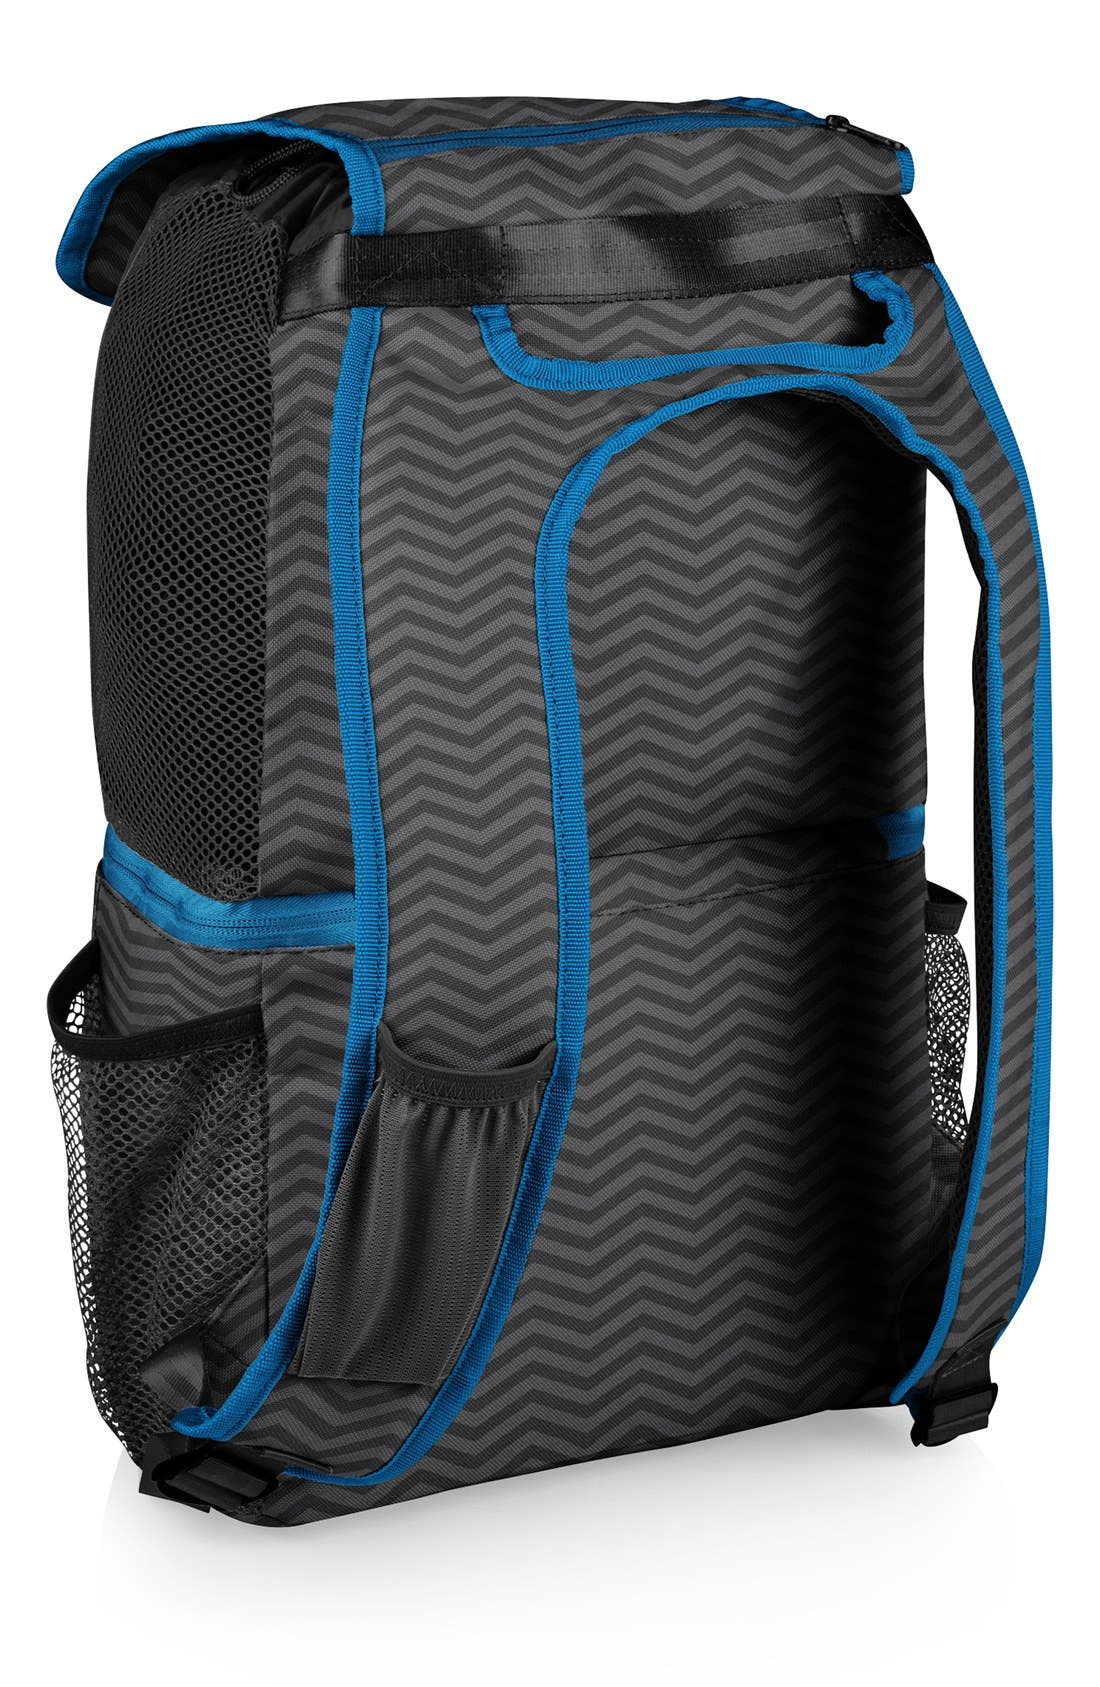 Alternate Image 3  - Picnic Time 'Pismo' Insulated Cooler Backpack